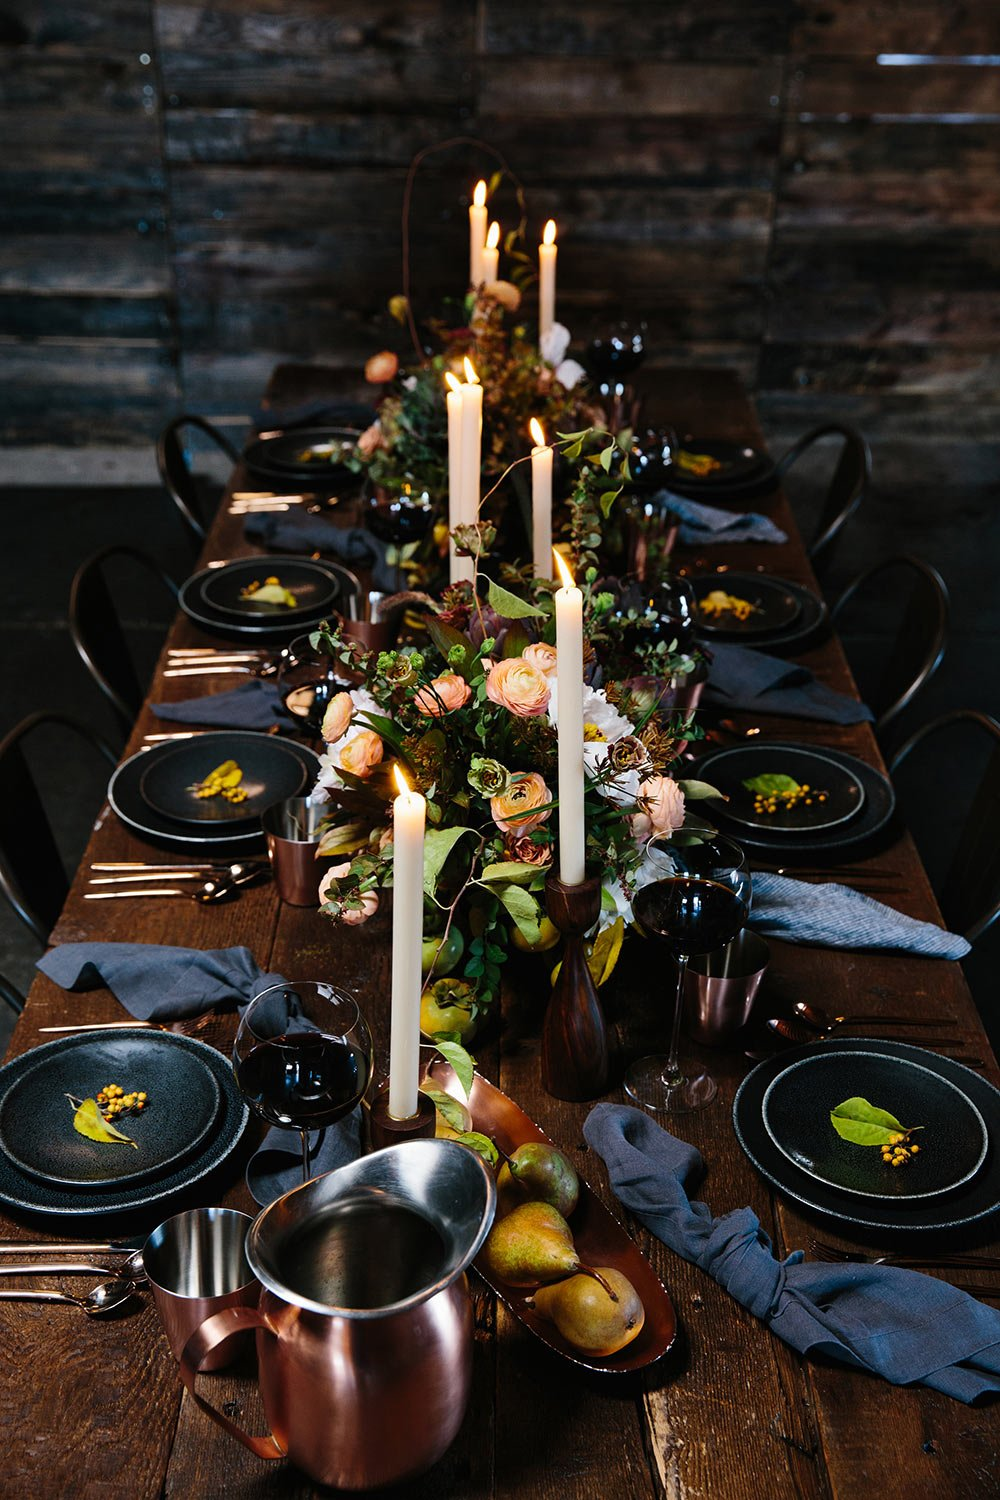 Black place settings on a dark wood table decorated with white and pink florals and rustic green botanicals